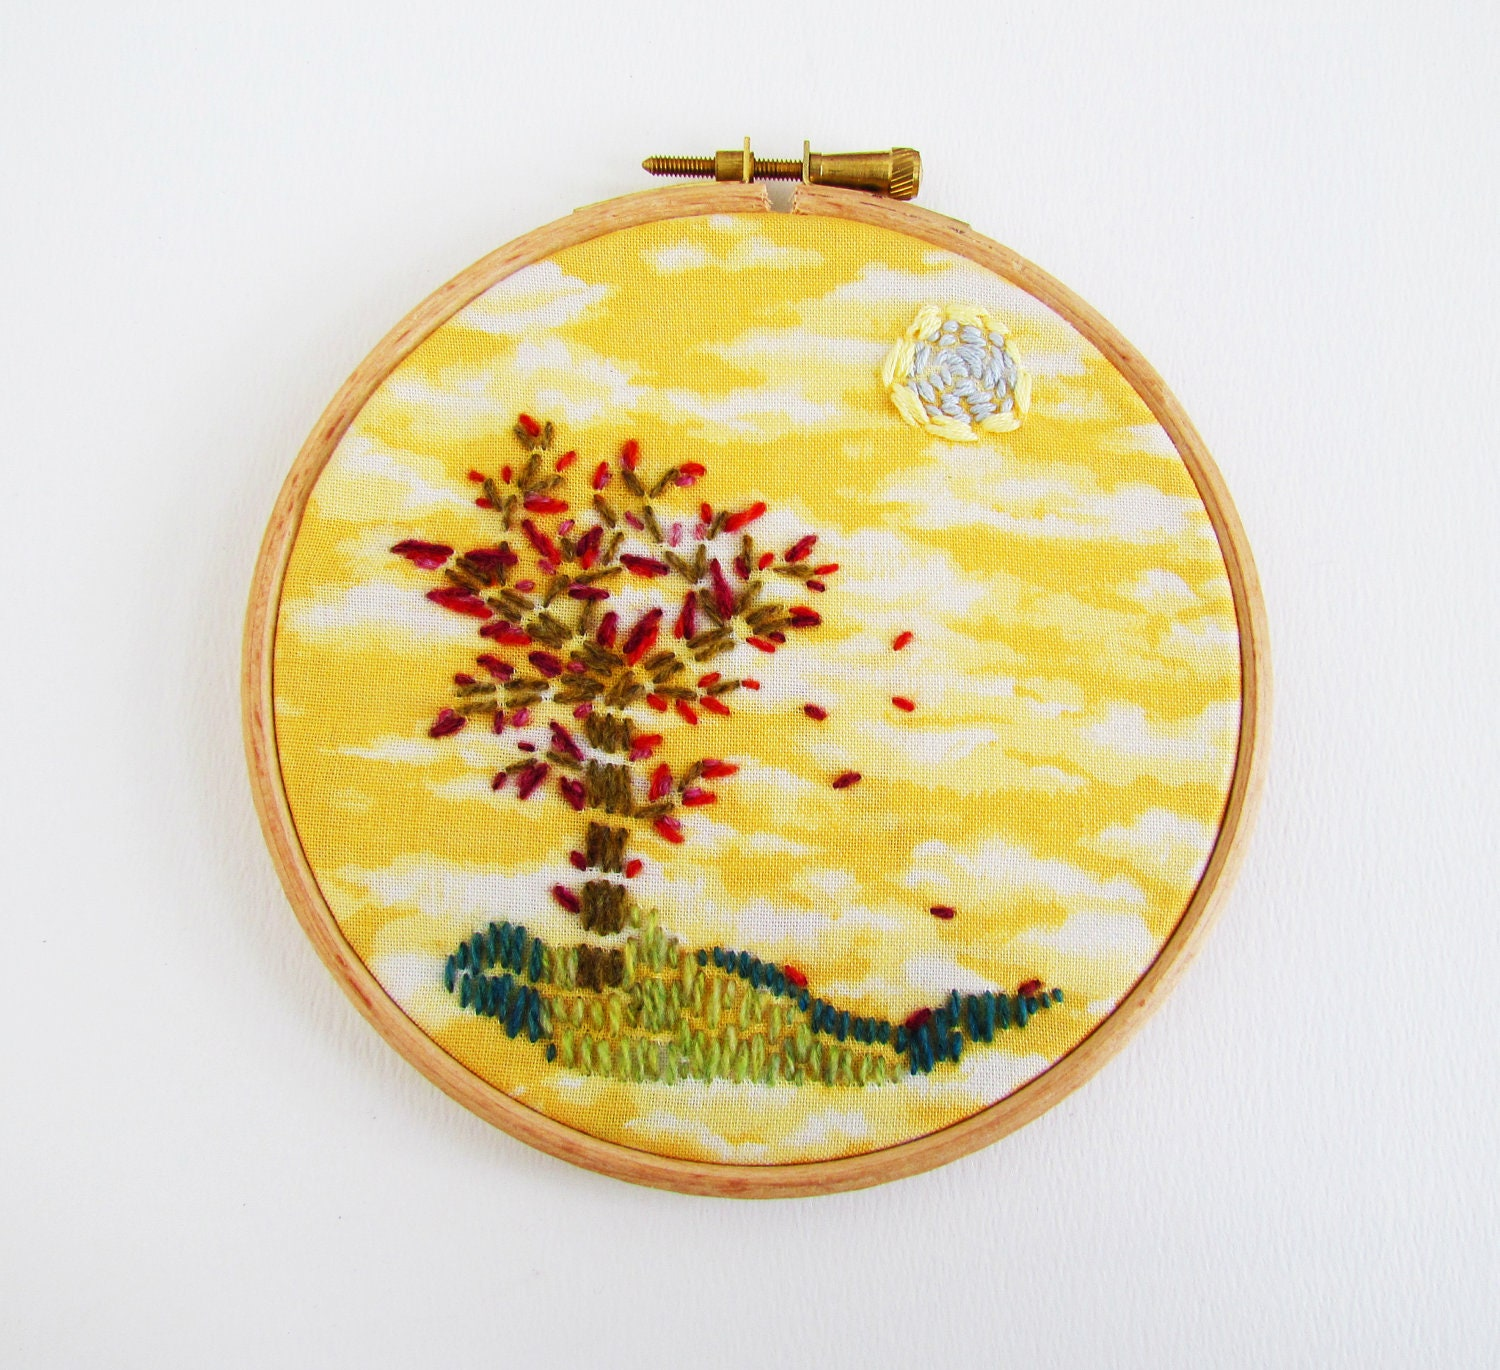 Autumnal landscape handmade embroidery in hoop - wall hanging - Fifinch